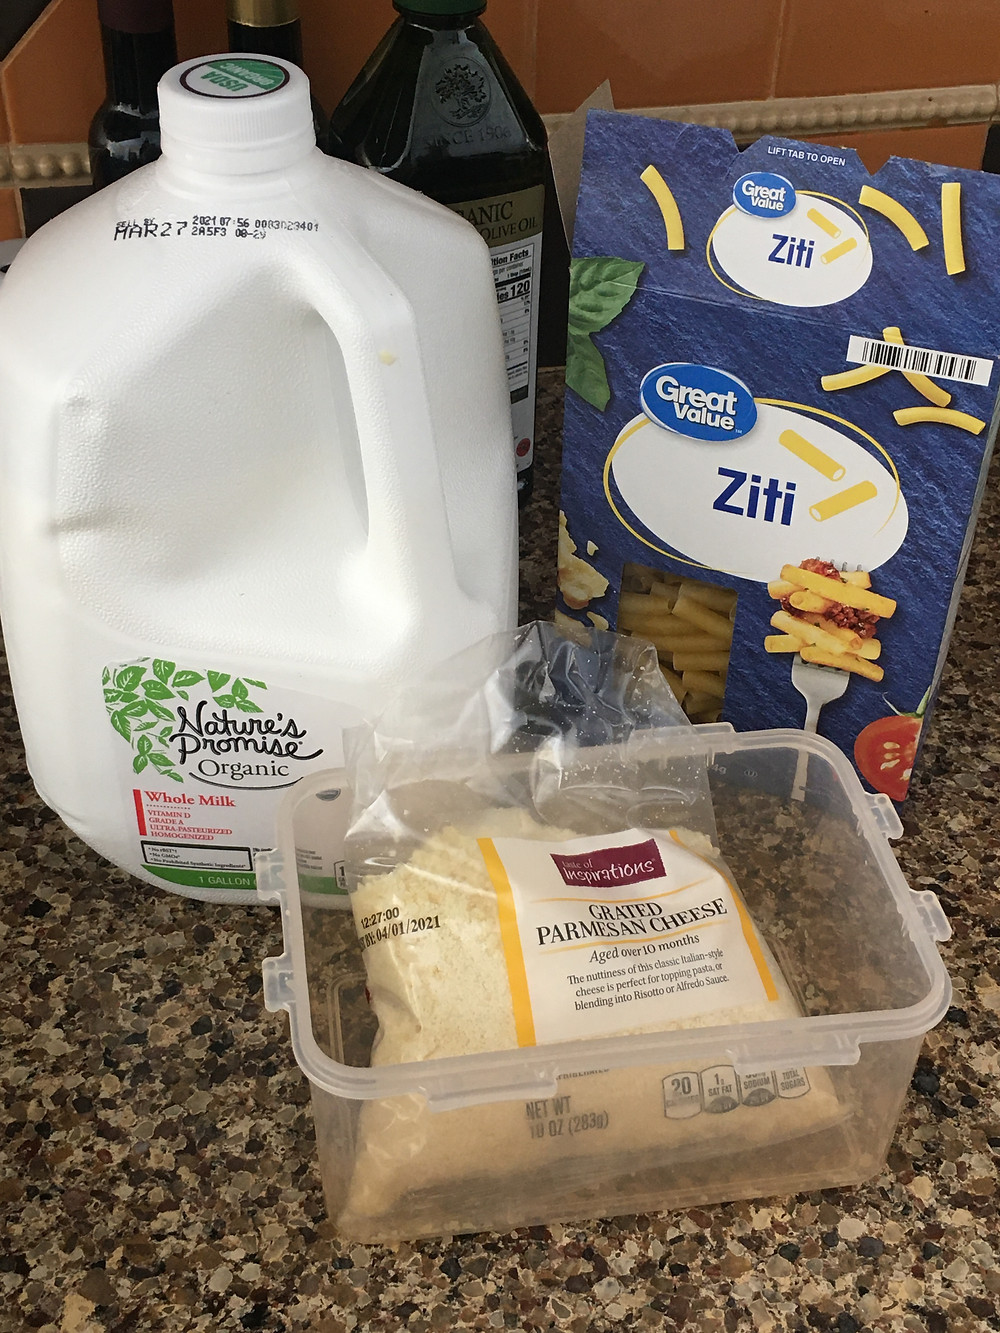 kitchen counter with one gallon of milk, one box of ziti pasta, one package of grated parmesan cheese